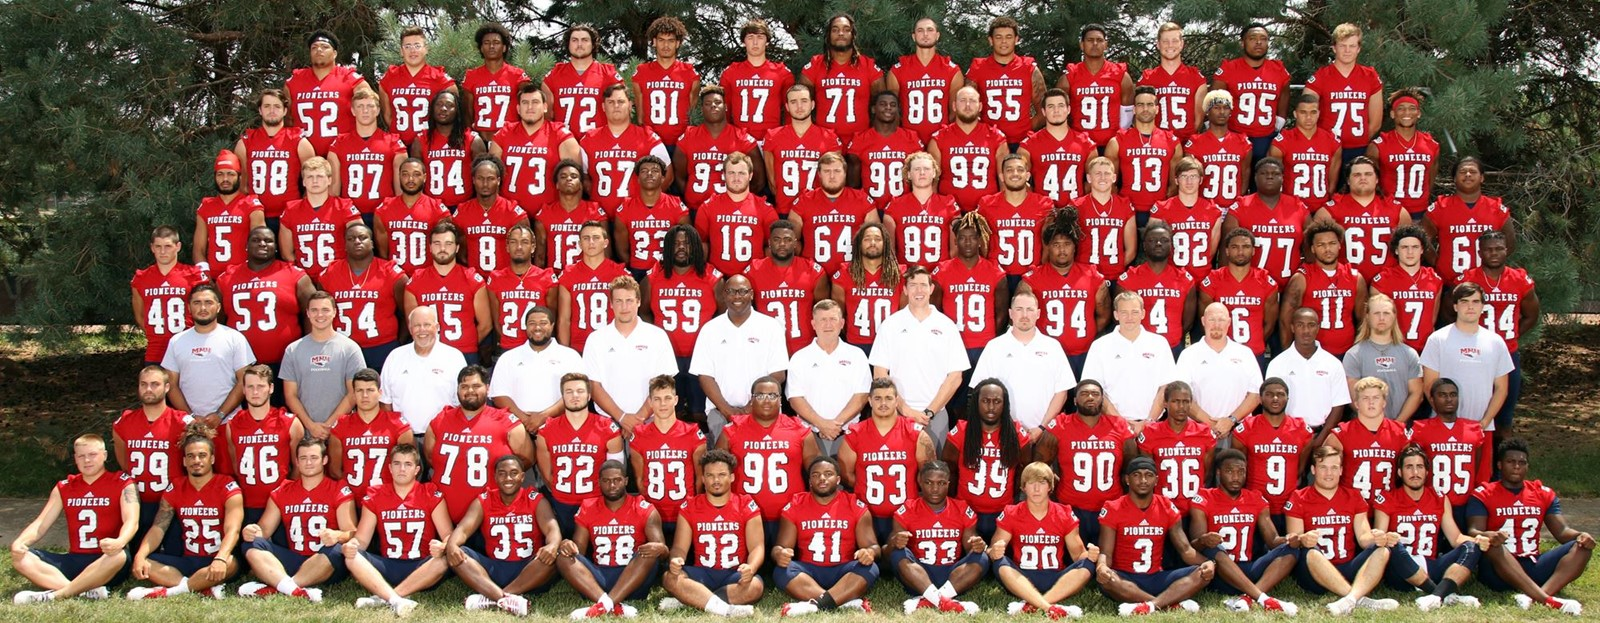 Fb 2018 Roster